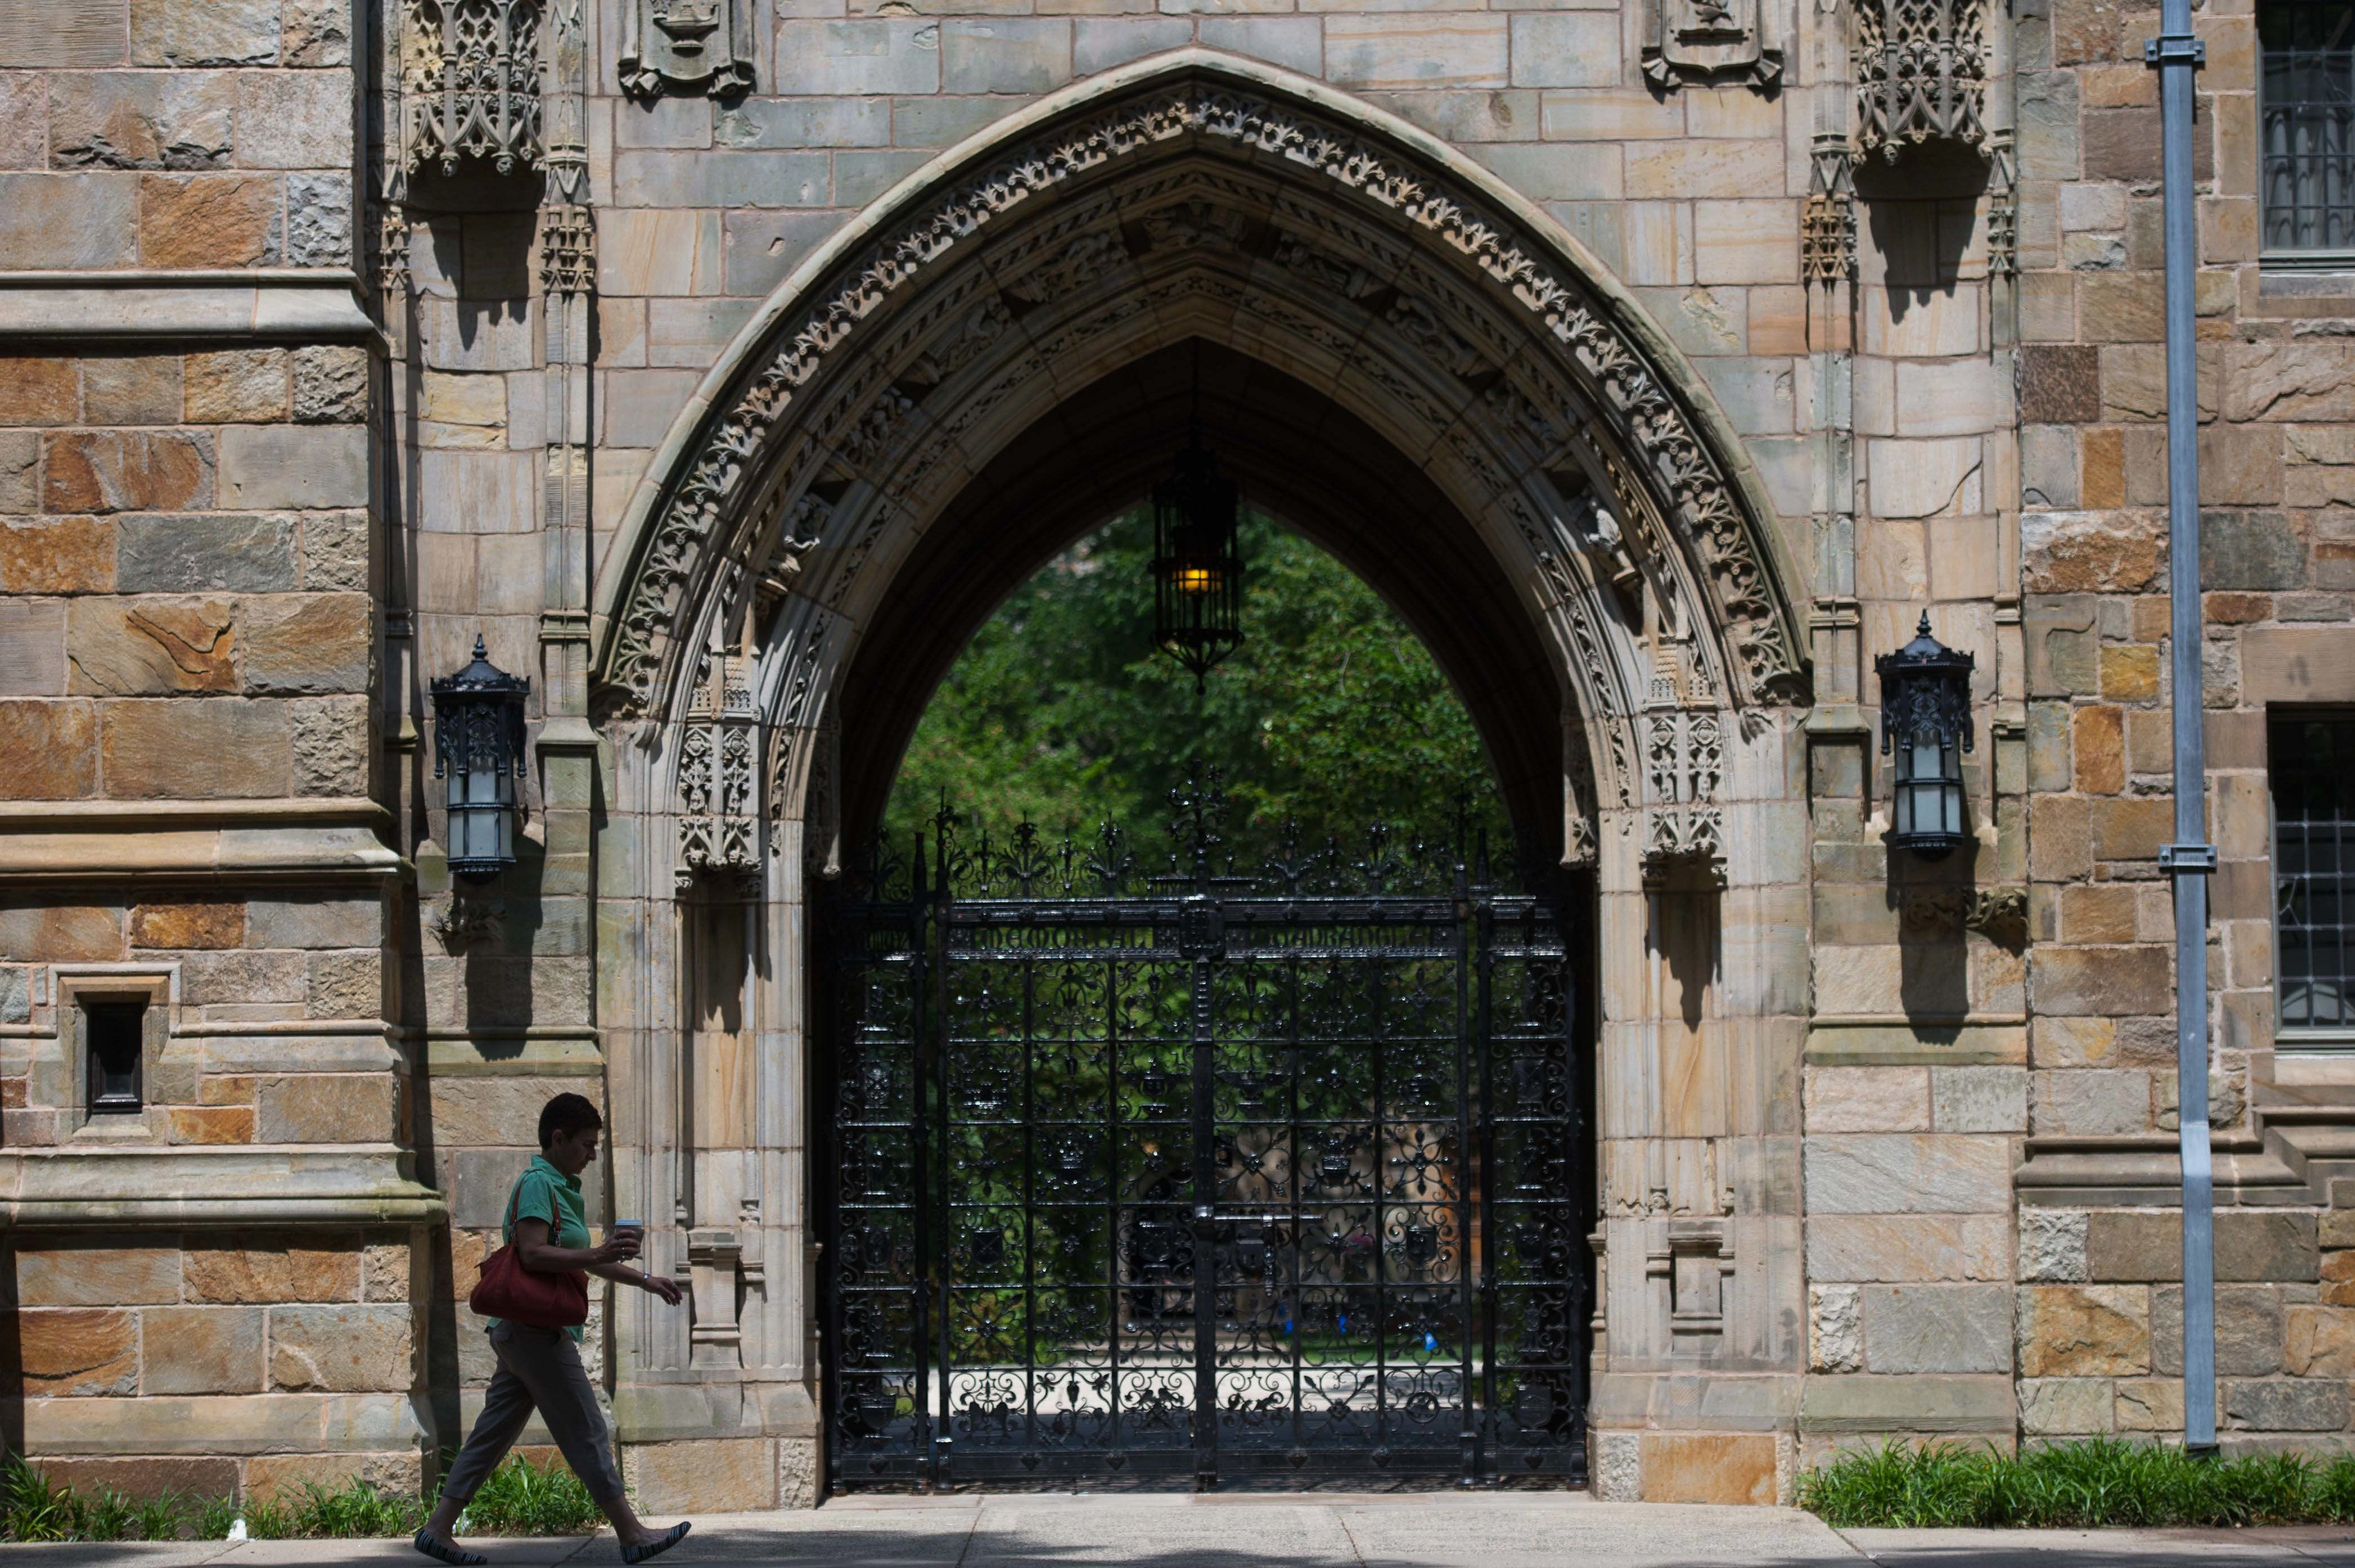 A pedestrian walks past Harkness Gate on the Yale University campus in New Haven, Connecticut, U.S., on Friday, June 12, 2015. Yale University is an educational institute that offers undergraduate degree programs in art, law, engineering, medicine, and nursing as well as graduate level programs. Photographer: Craig Warga/Bloomberg via Getty Images